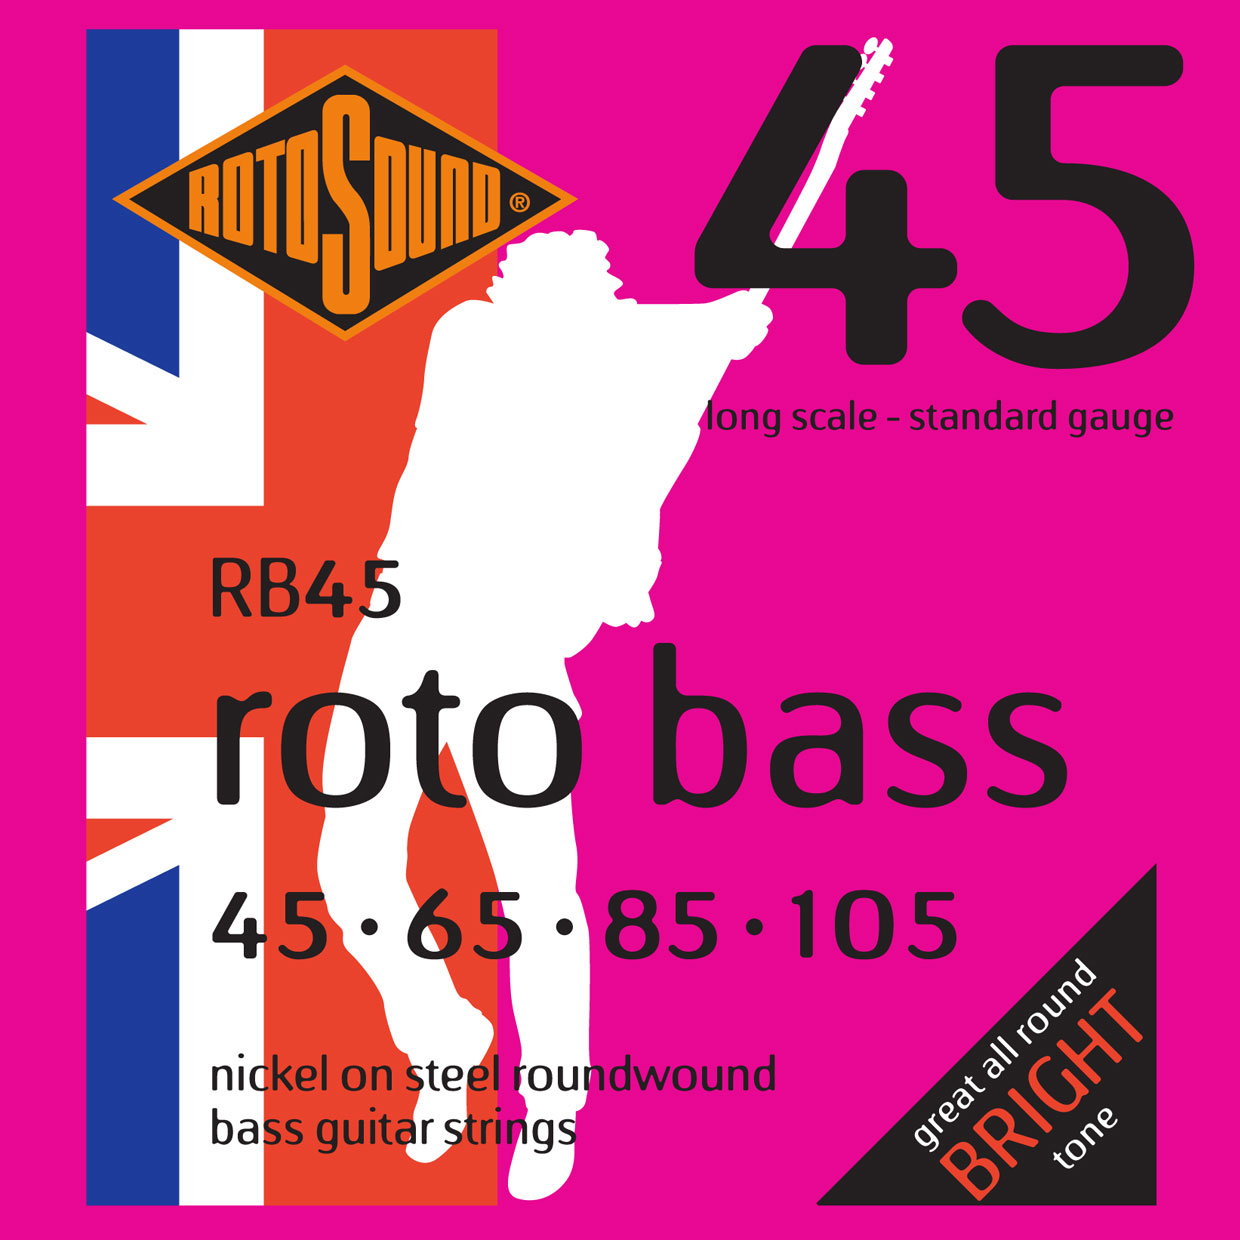 ROTO BASS RB45 NICKEL (UNSILKED) 45105